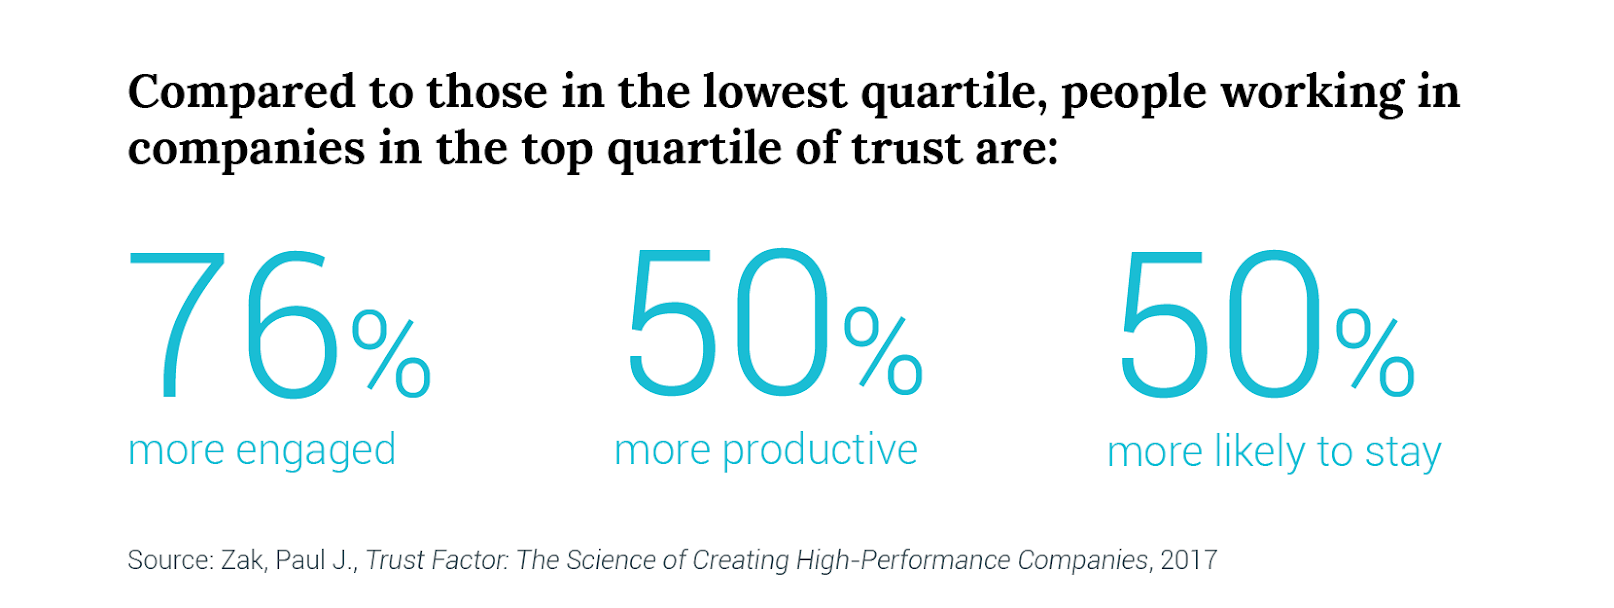 People working in high-trust companies are more engaged, more productive, and more likely to stay